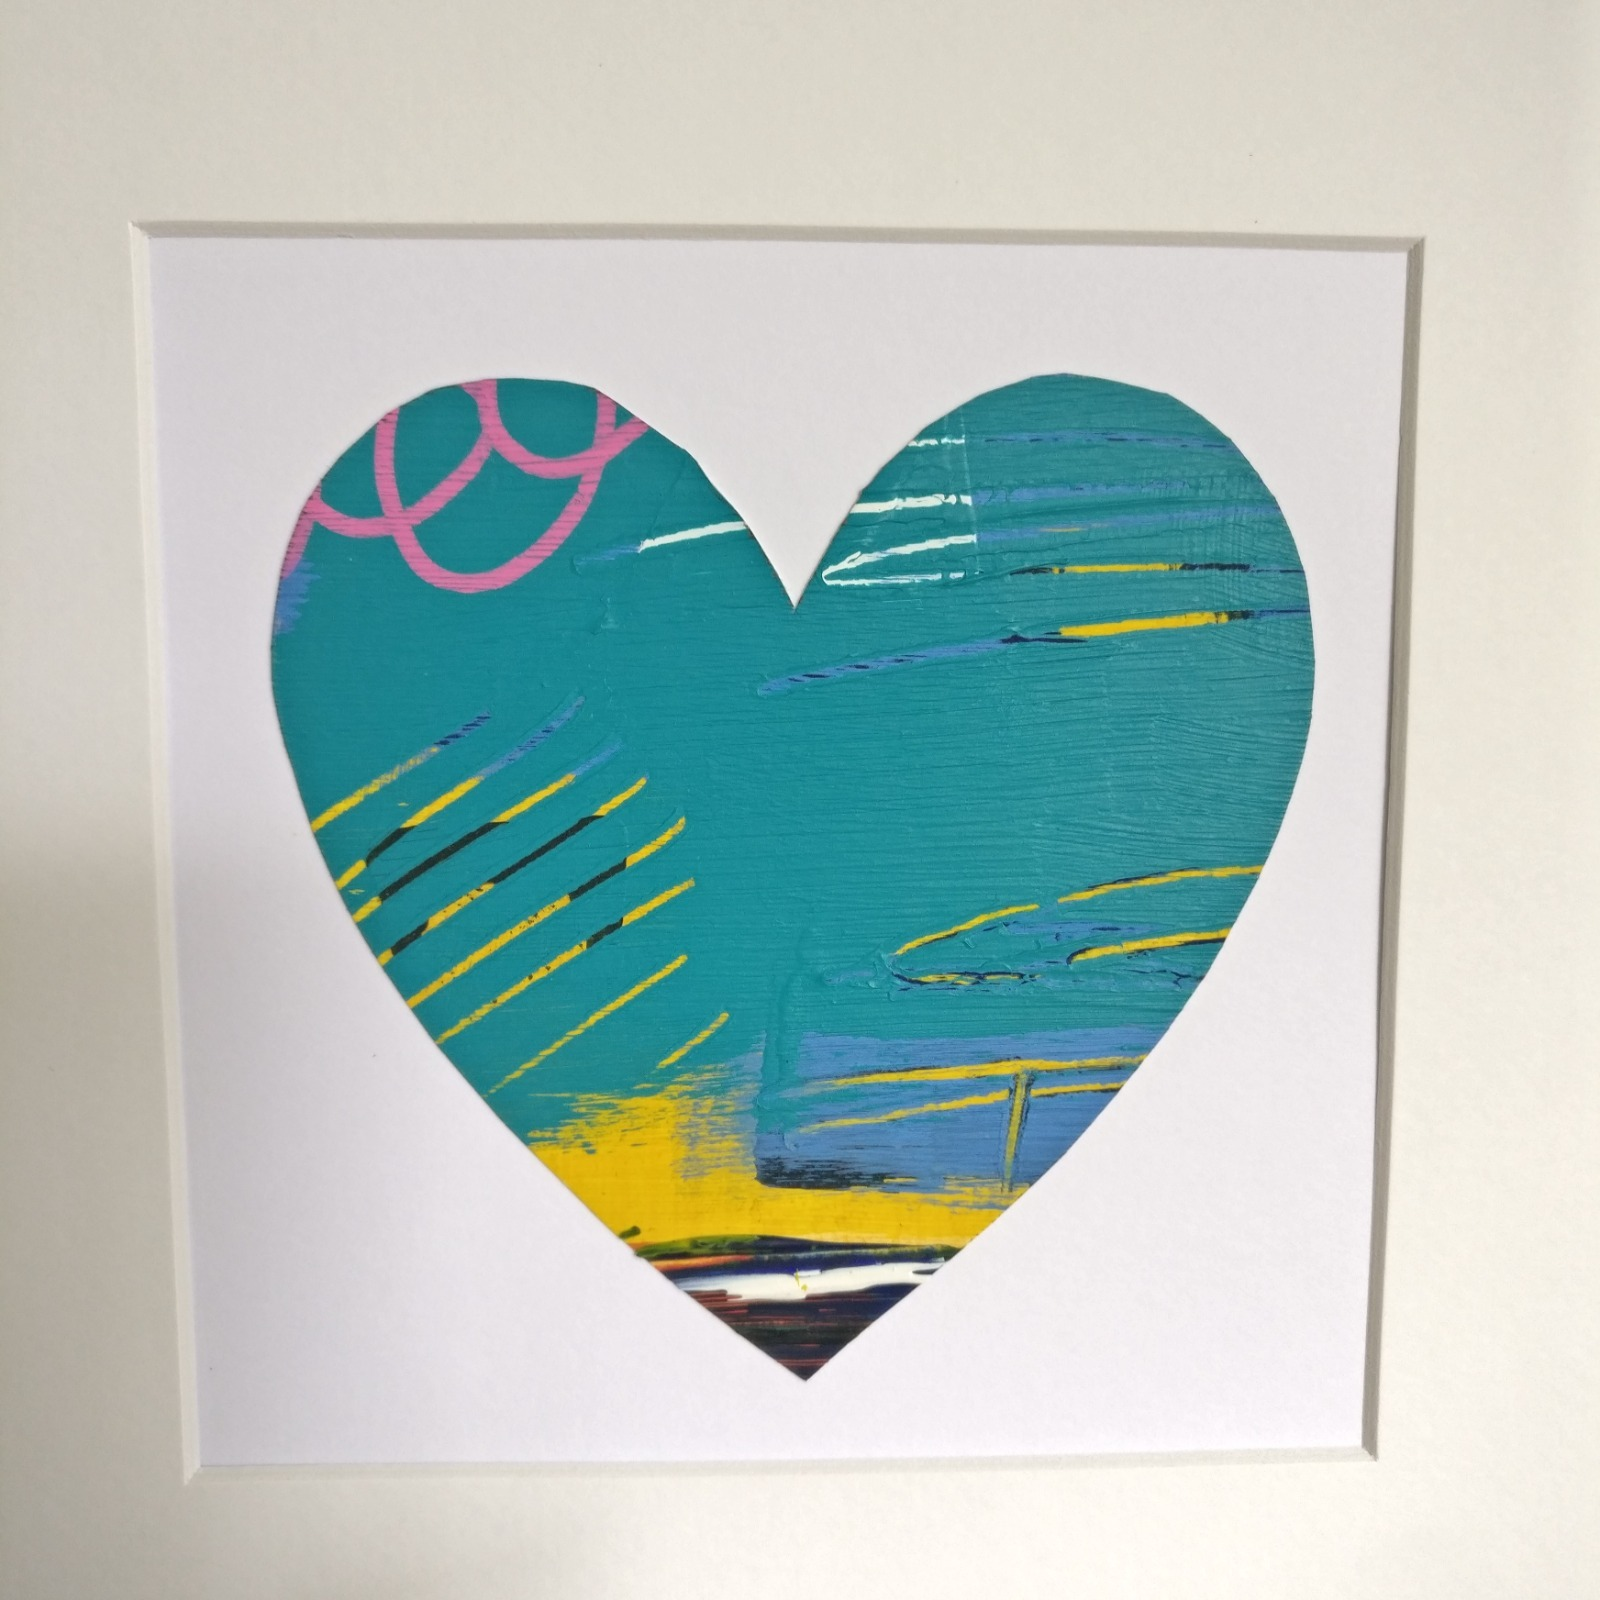 Abstract colour heart framed painting - 5 of 6